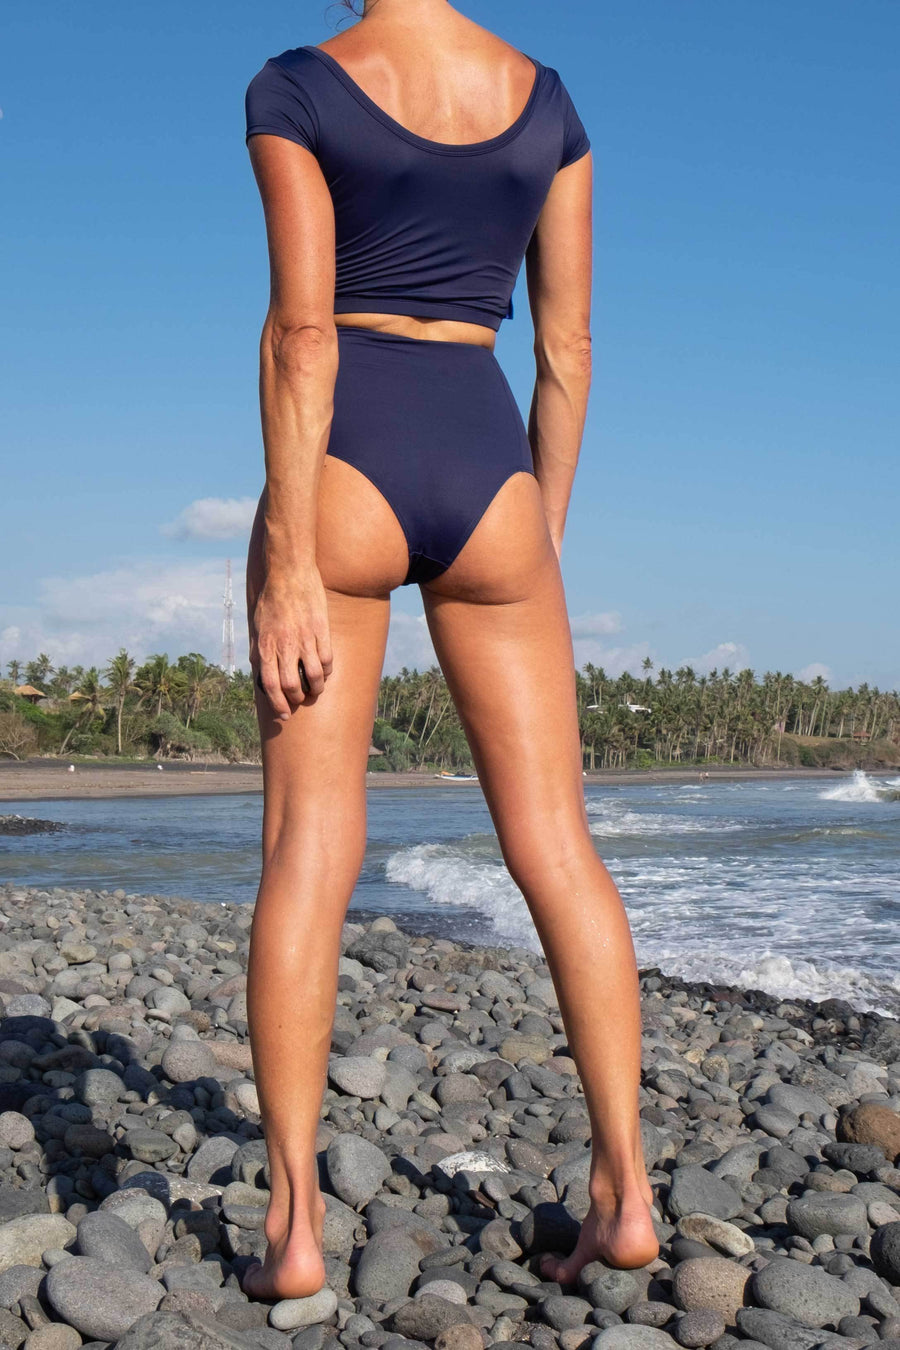 ninefoot surf swimwear for women bikini high waist bottom navy blue